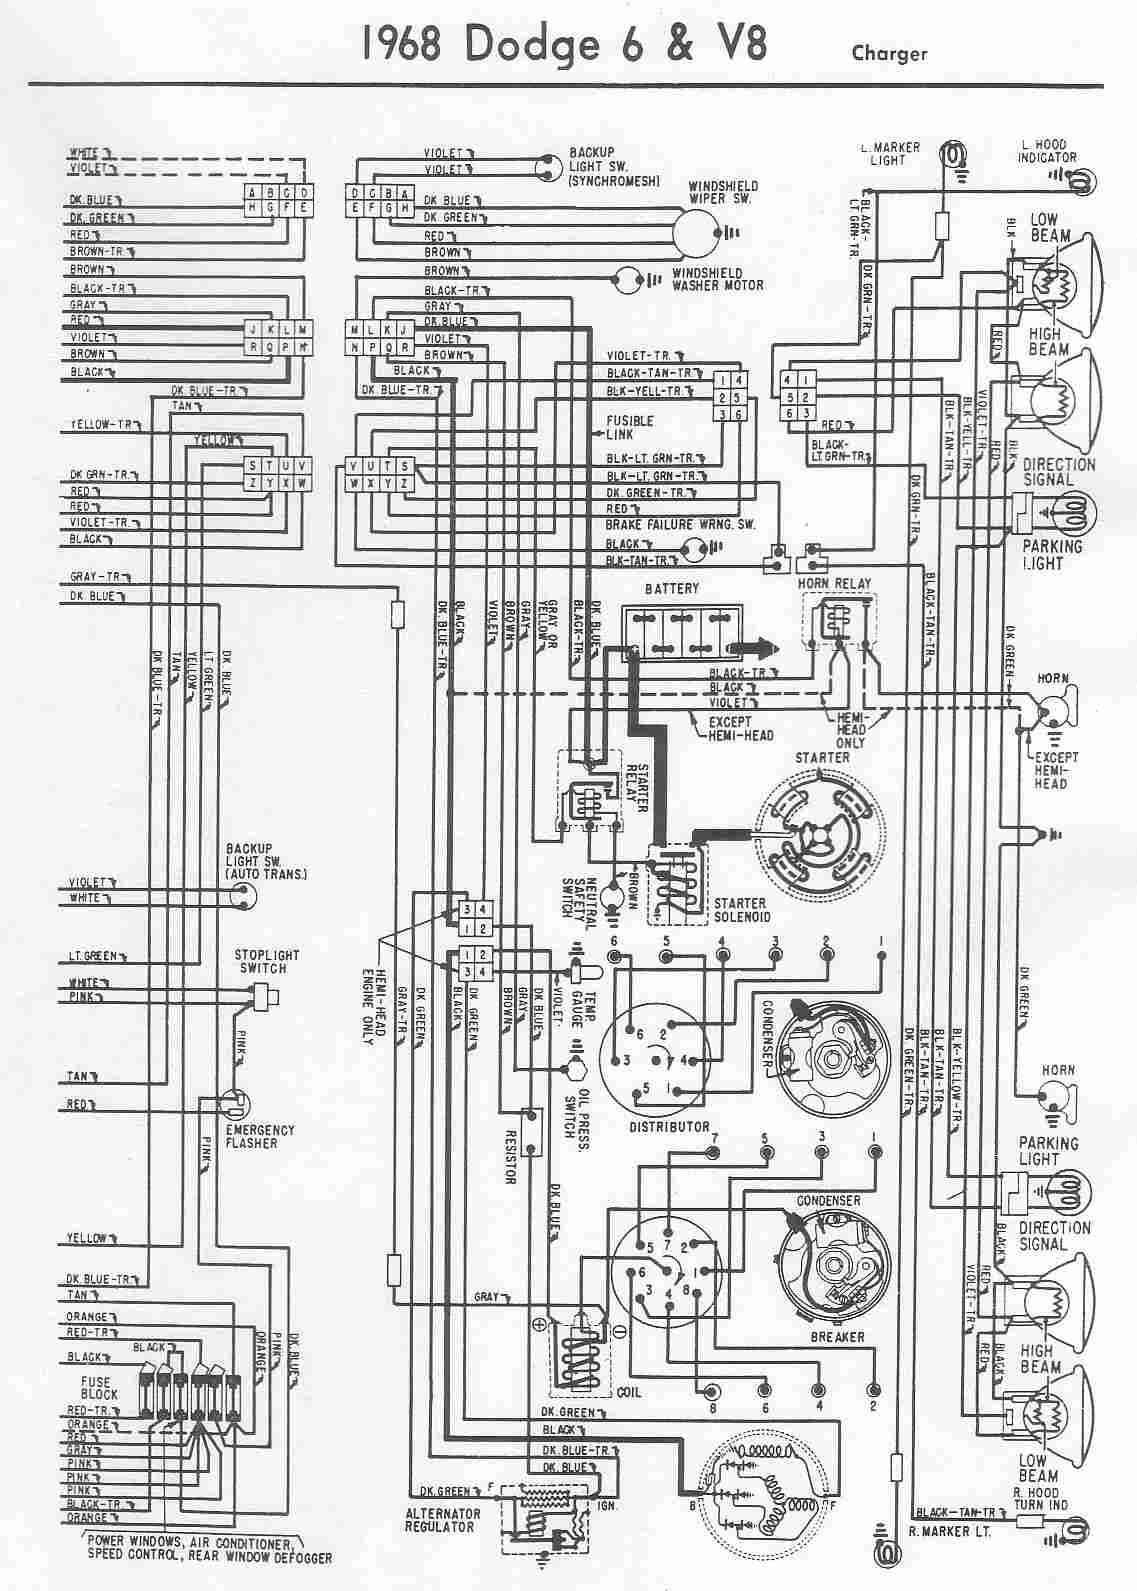 Dodge Car Manuals Wiring Diagrams Pdf Fault Codes 2004 Blower Motor Diagram Free Download